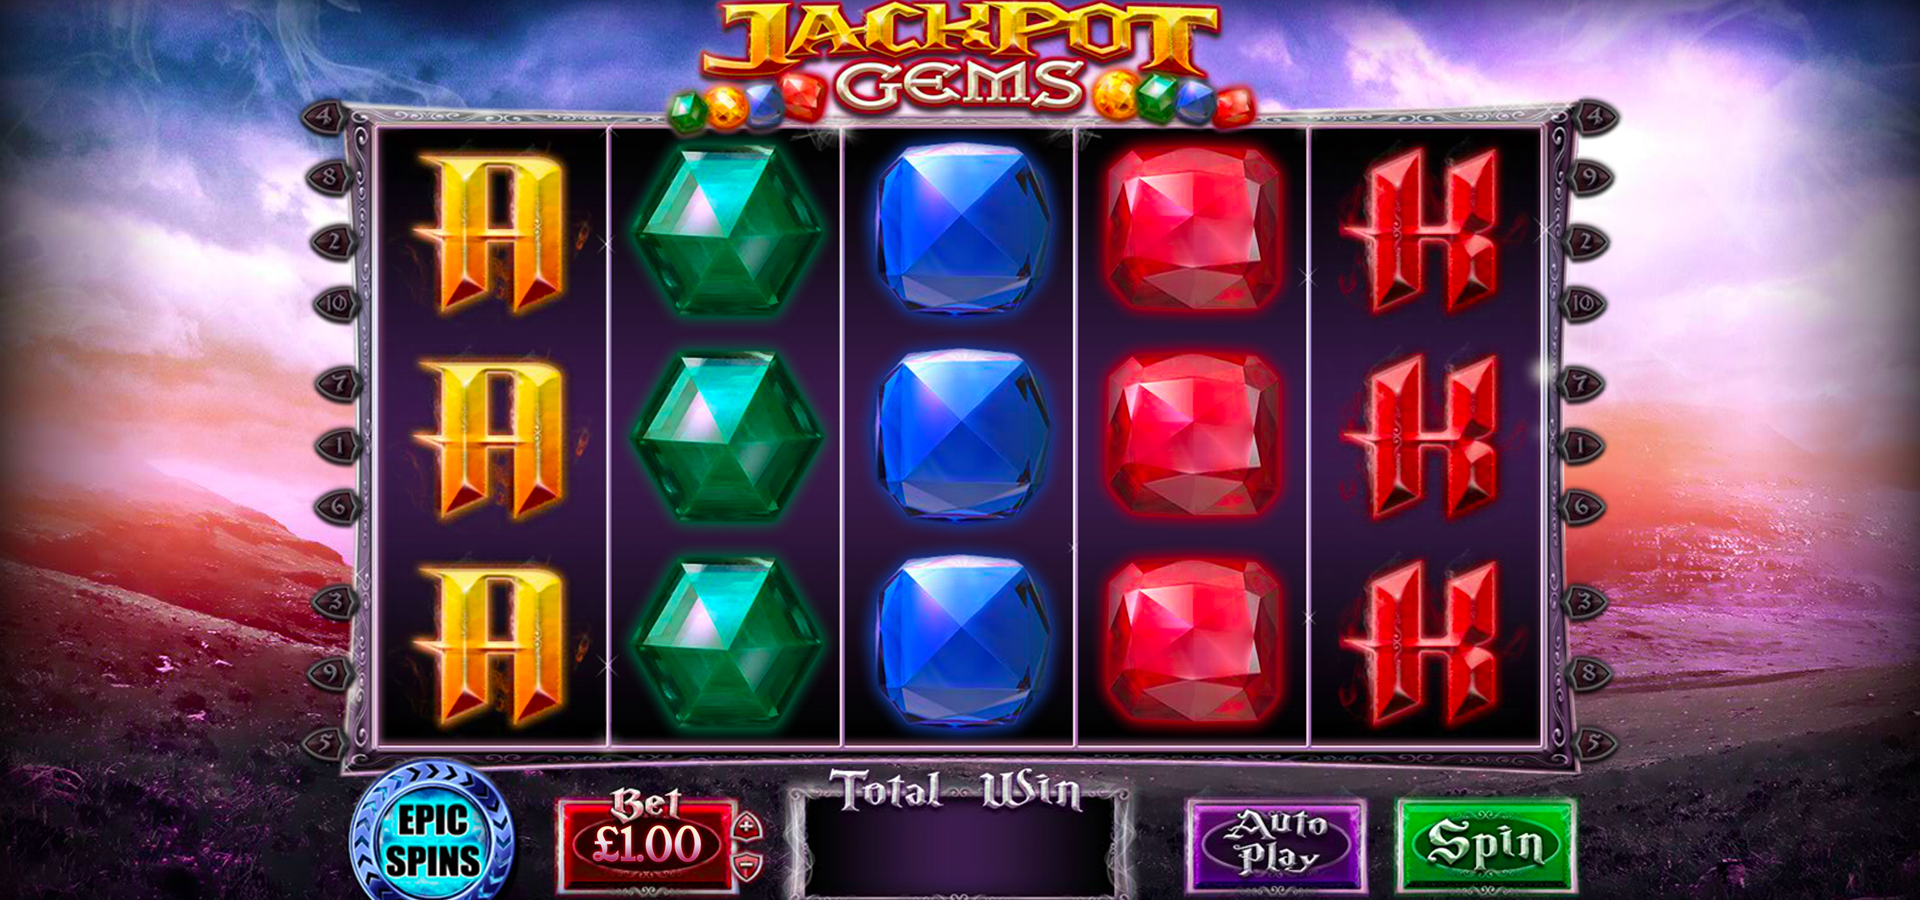 Play Jackpot Gems Slots Claim 100 Free Spins Today